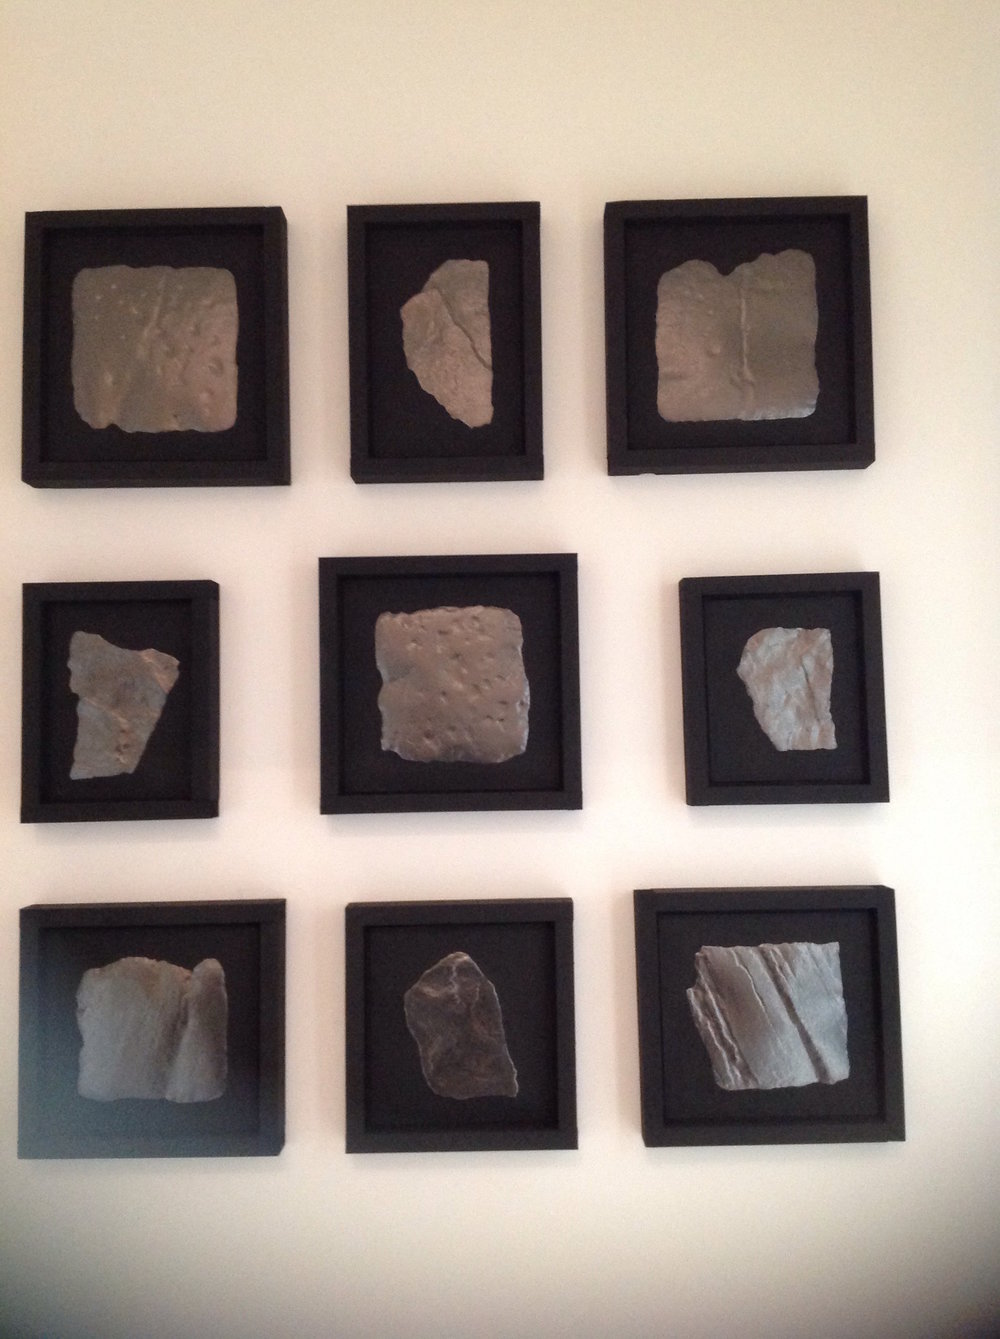 Tom Baskeyfield's series of graphite images of stone setts of Macclesfield